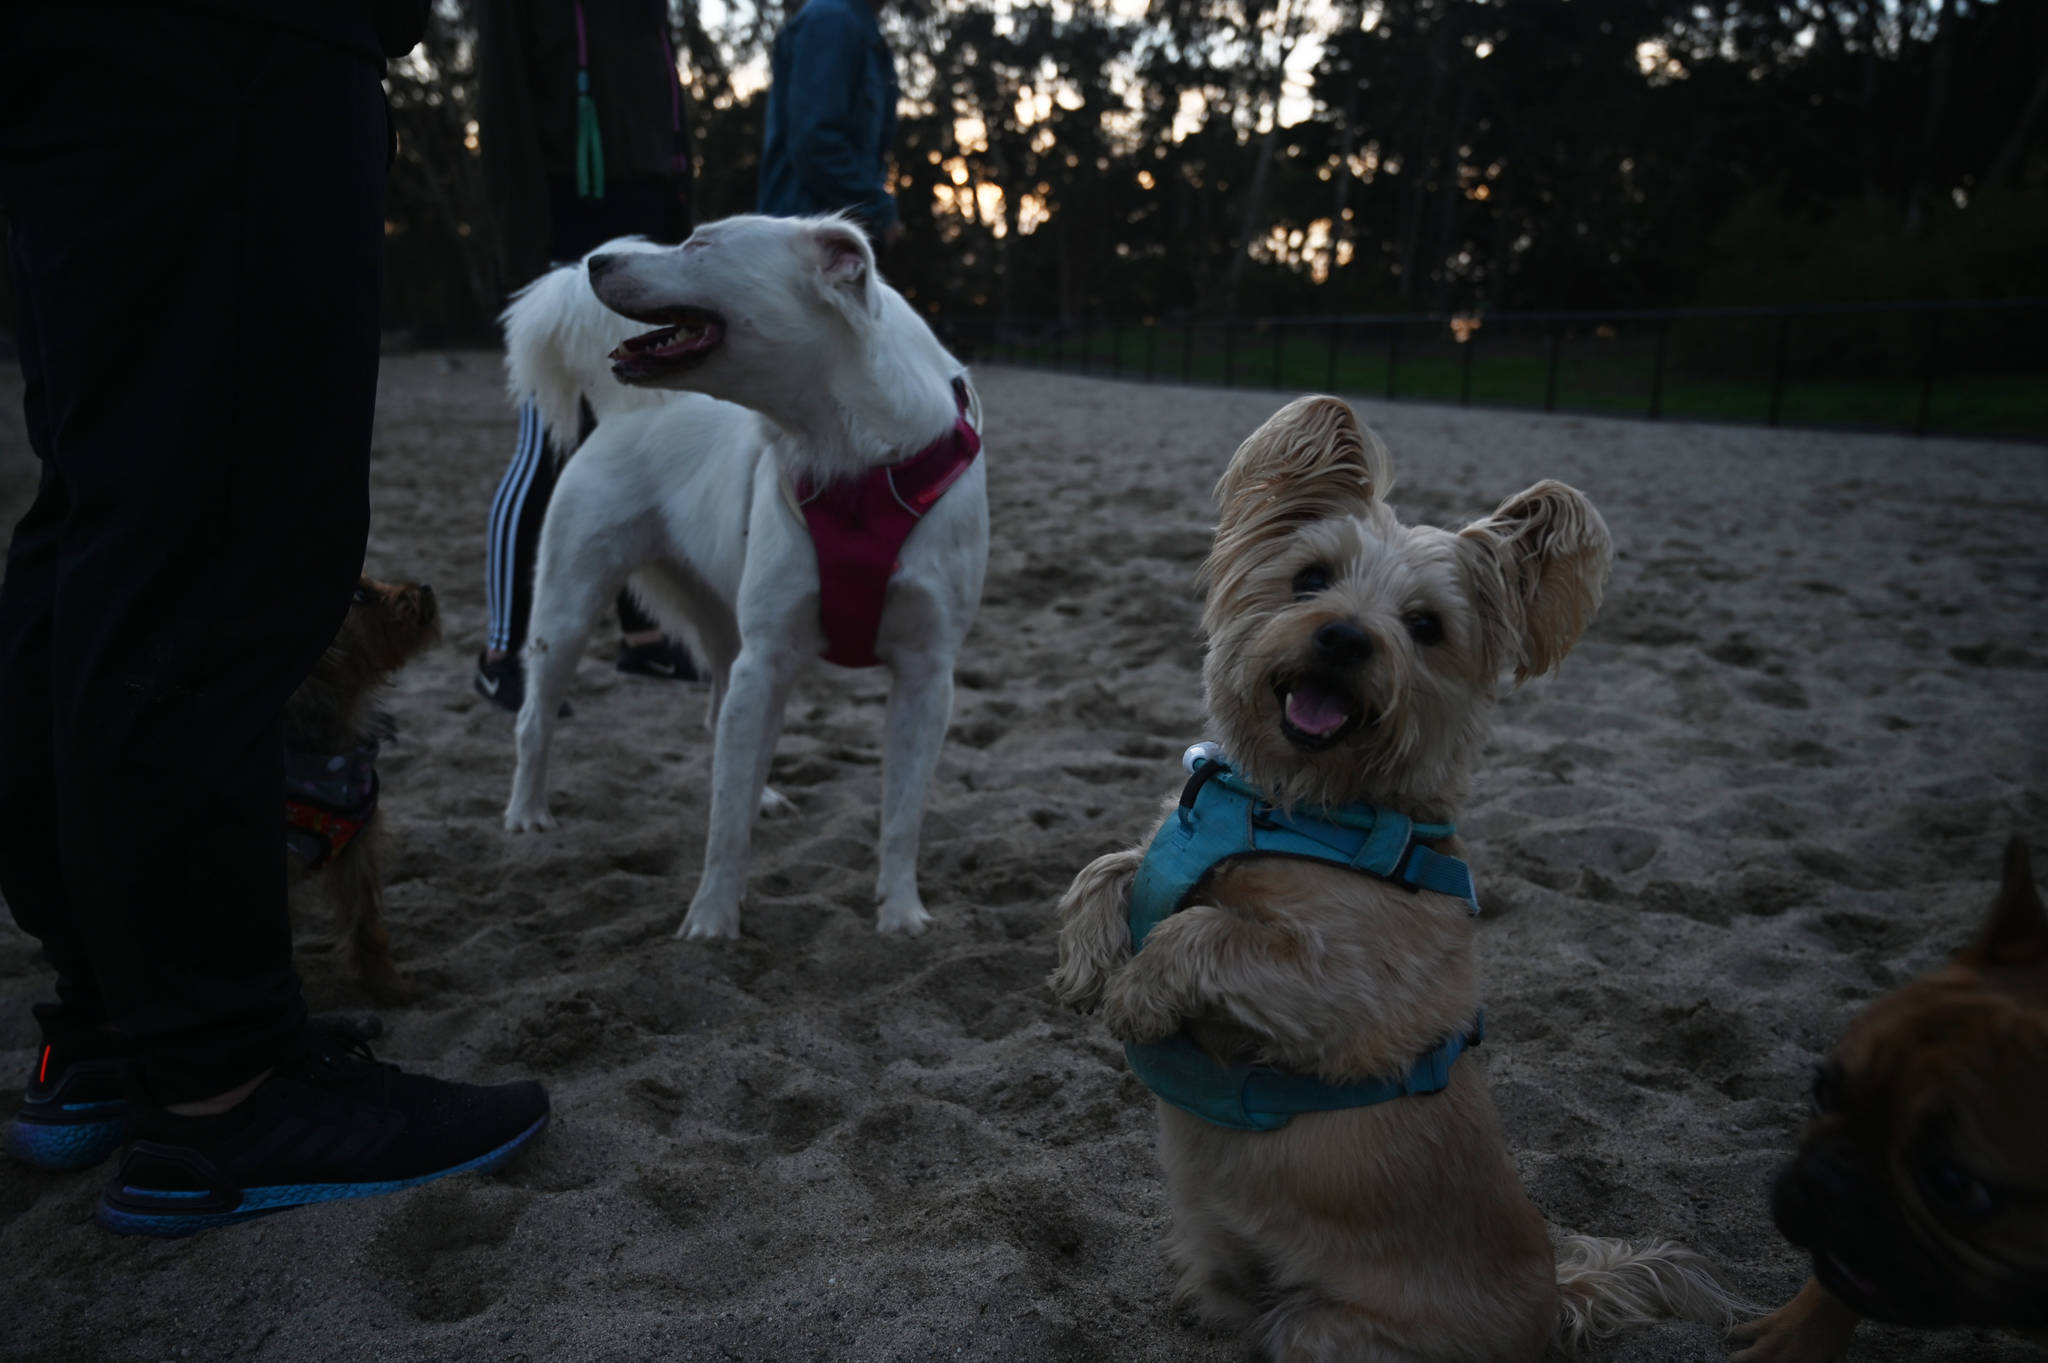 The renovated Golden Gate Dog Training Area includes separate spaces for large and small dogs. (Samantha Laurey/Special to SF Examiner)